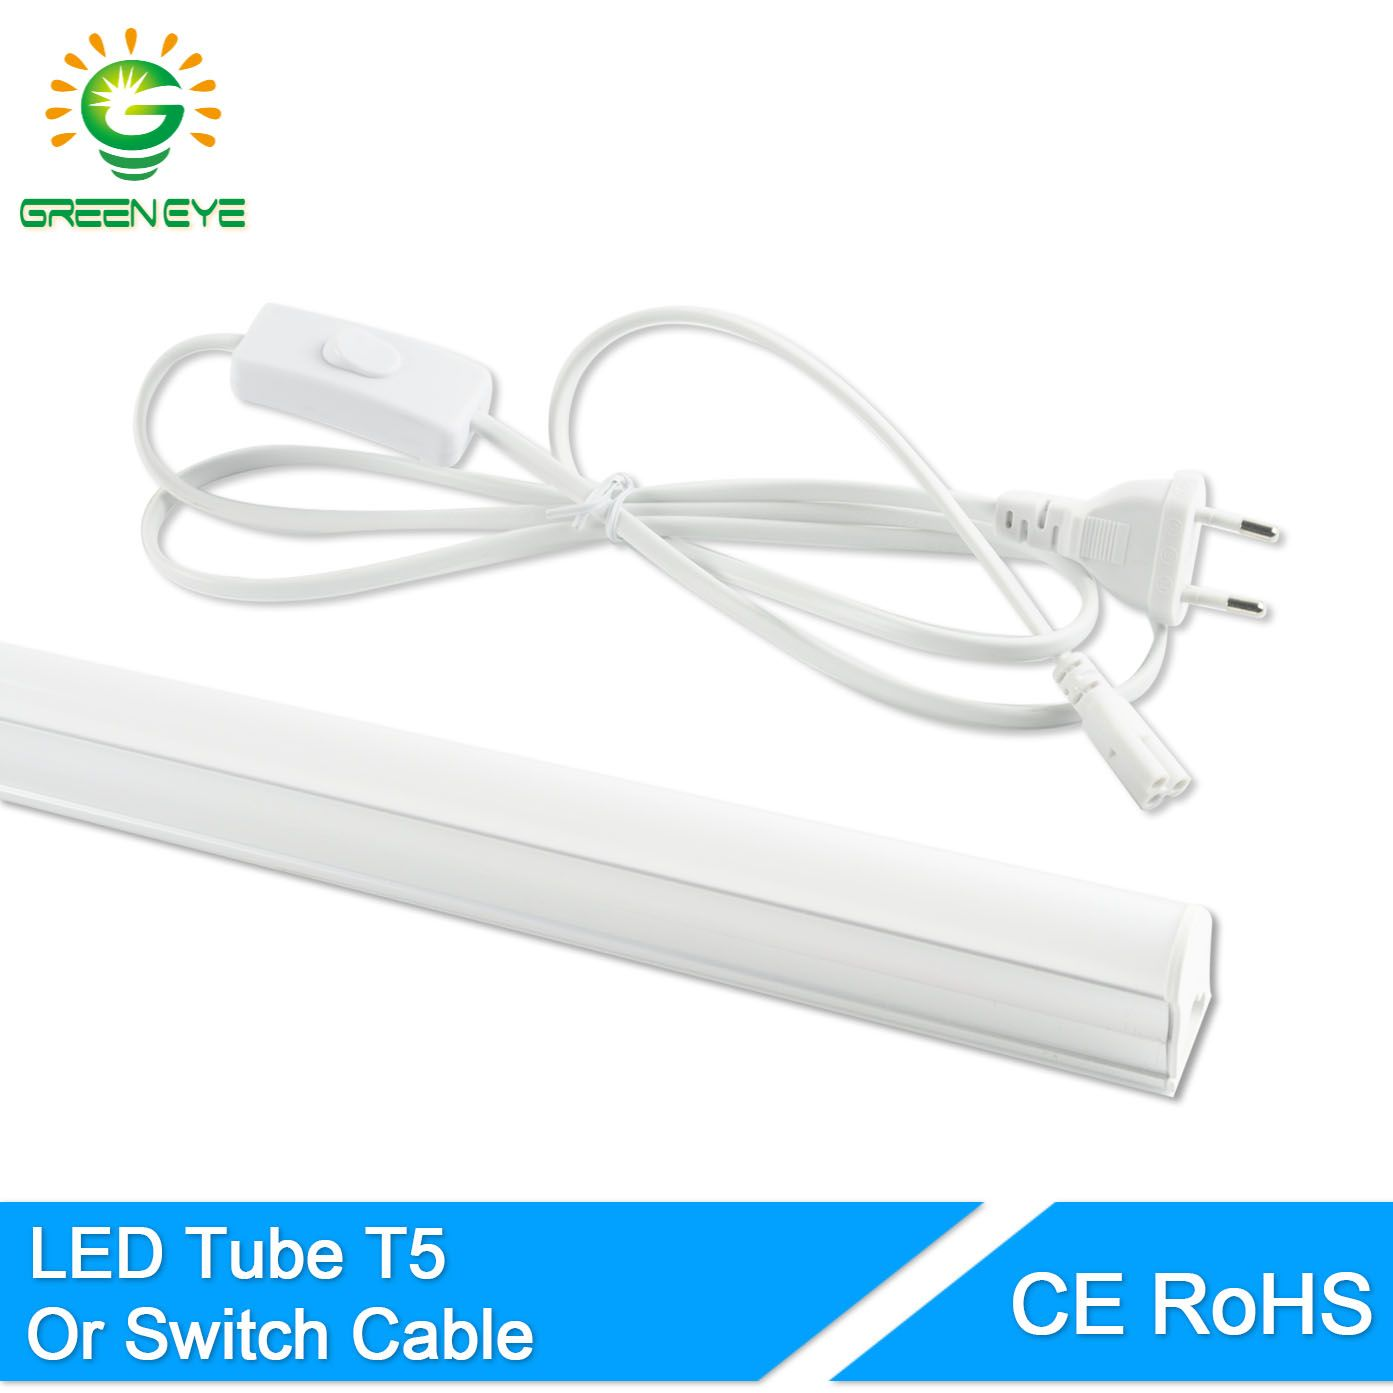 Greeneye Ue Commutateur C Ble Fil Int Gr Led Tube T5 Lumi Re 220 V